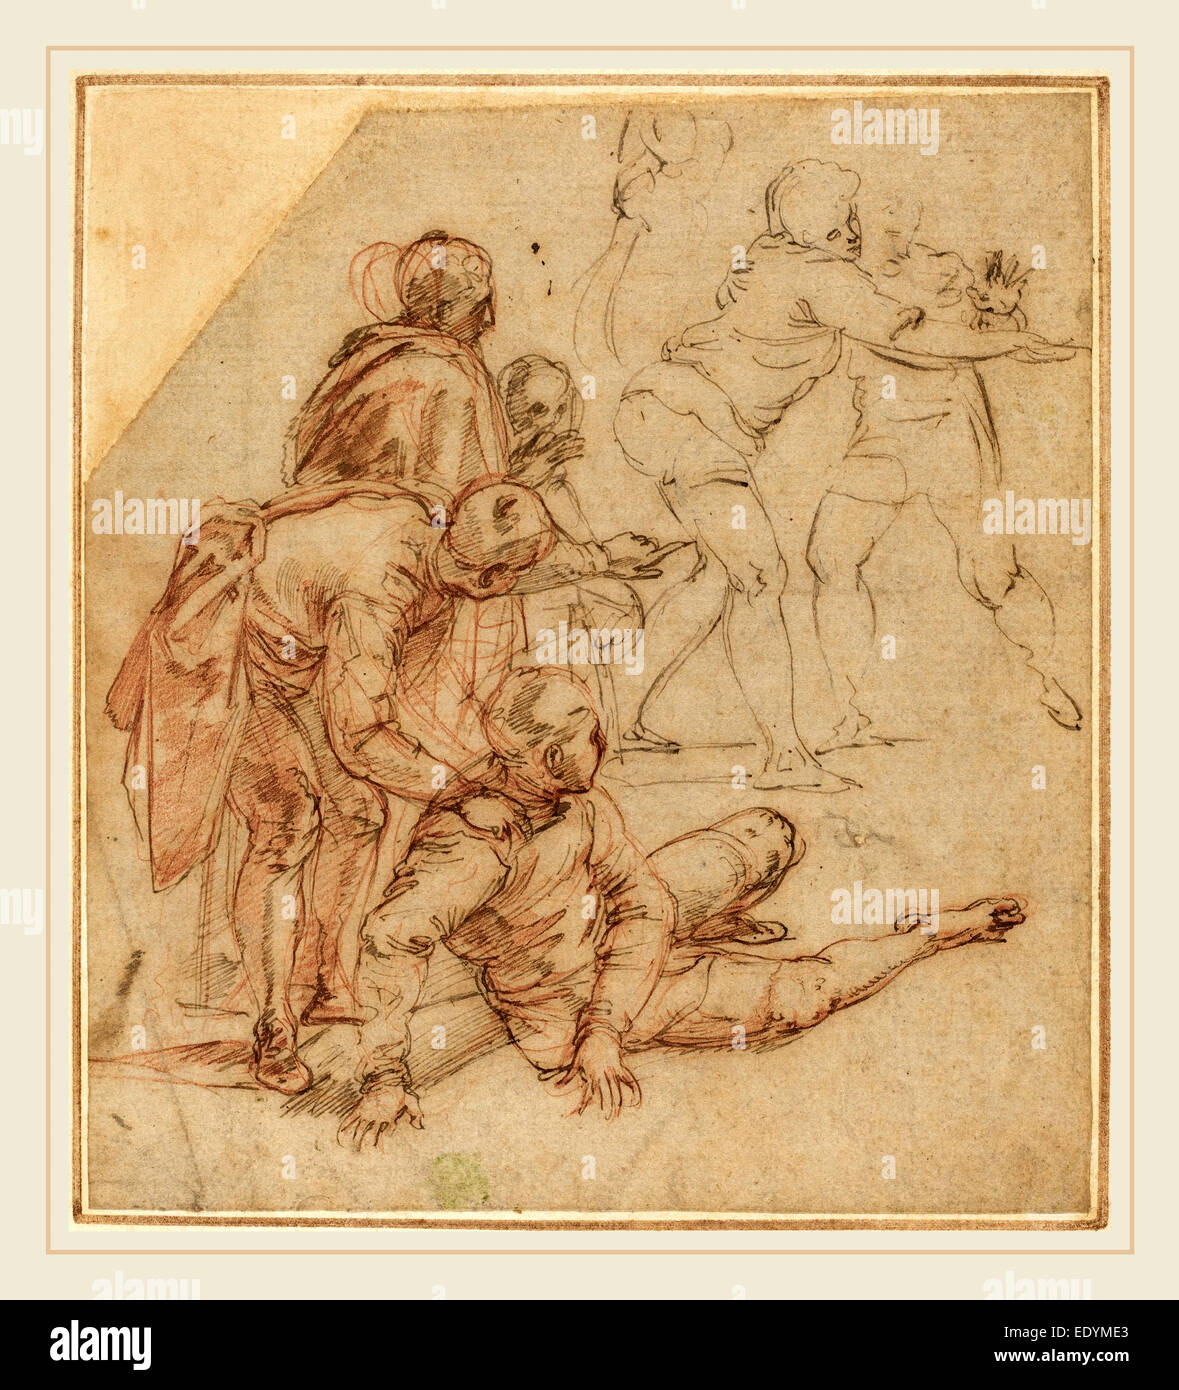 Battista Franco, Italian (probably 1498-1561), Spectators Amazed, 1540s, pen and brown ink over red and black chalk - Stock Image